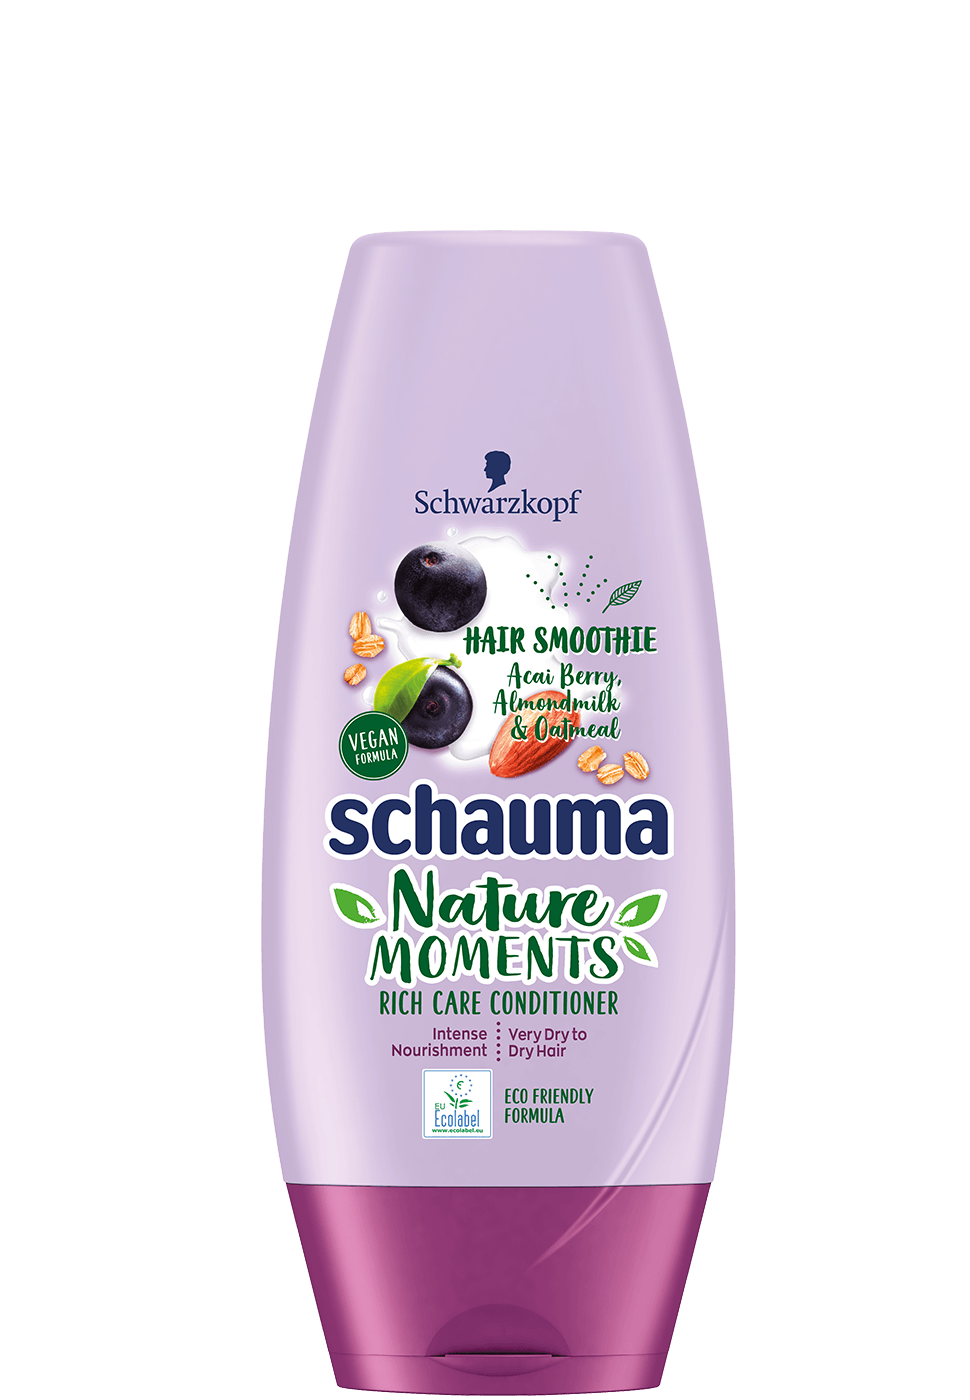 schauma_com_nature_moments_acai_berry_almondmilk_oat_condtioner_970x1400